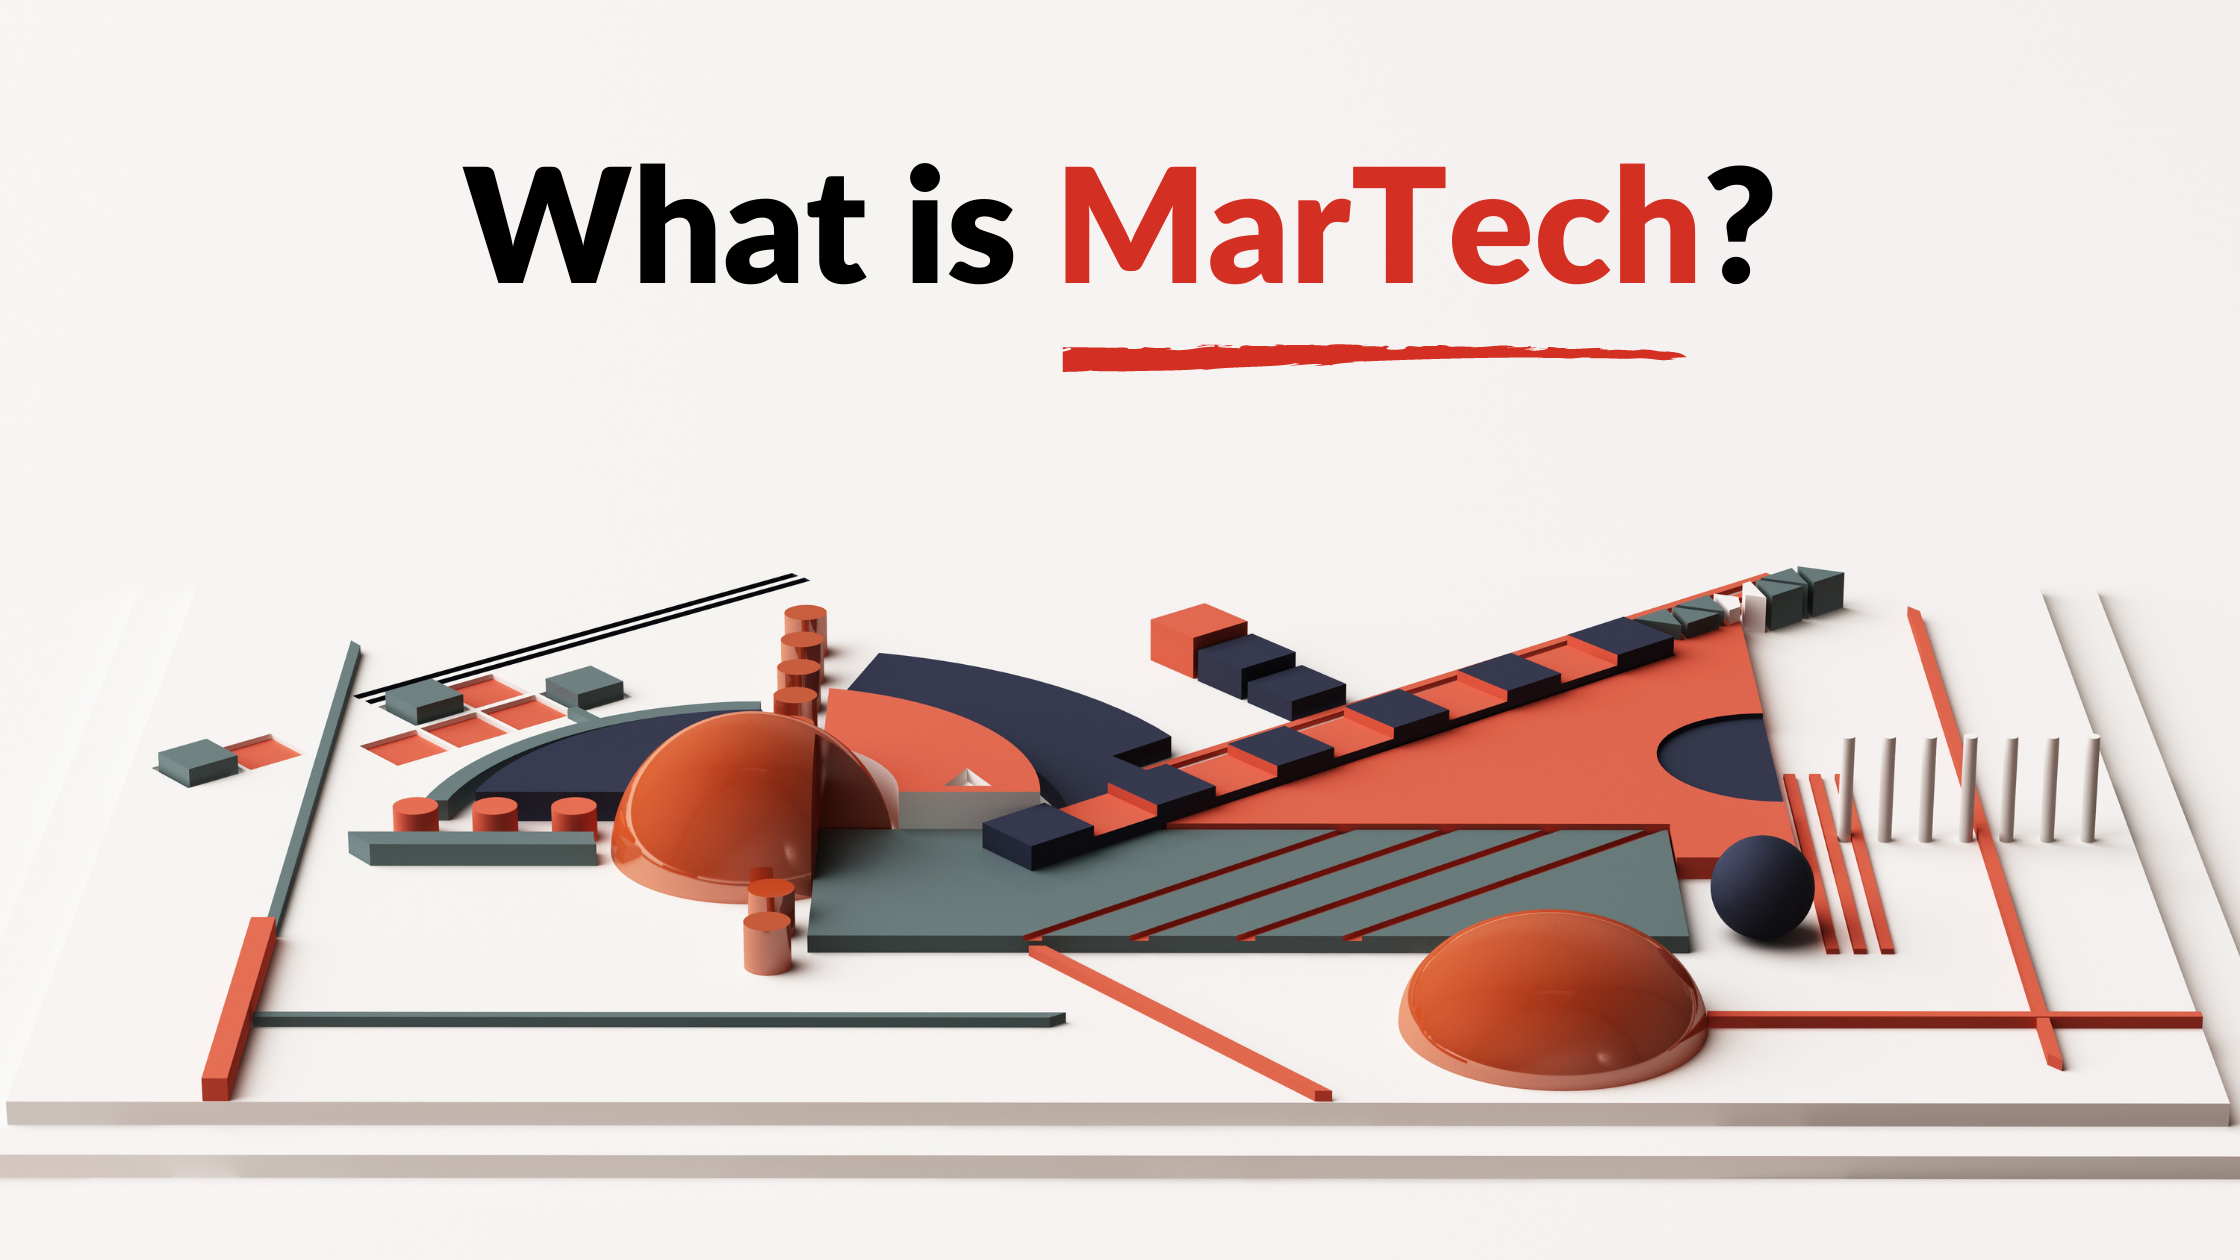 what is martech, what is marketing technology, What are marketing technologies, What does a marketing technologist do, Why is marketing technology important, MarTech platforms, Martech solutions